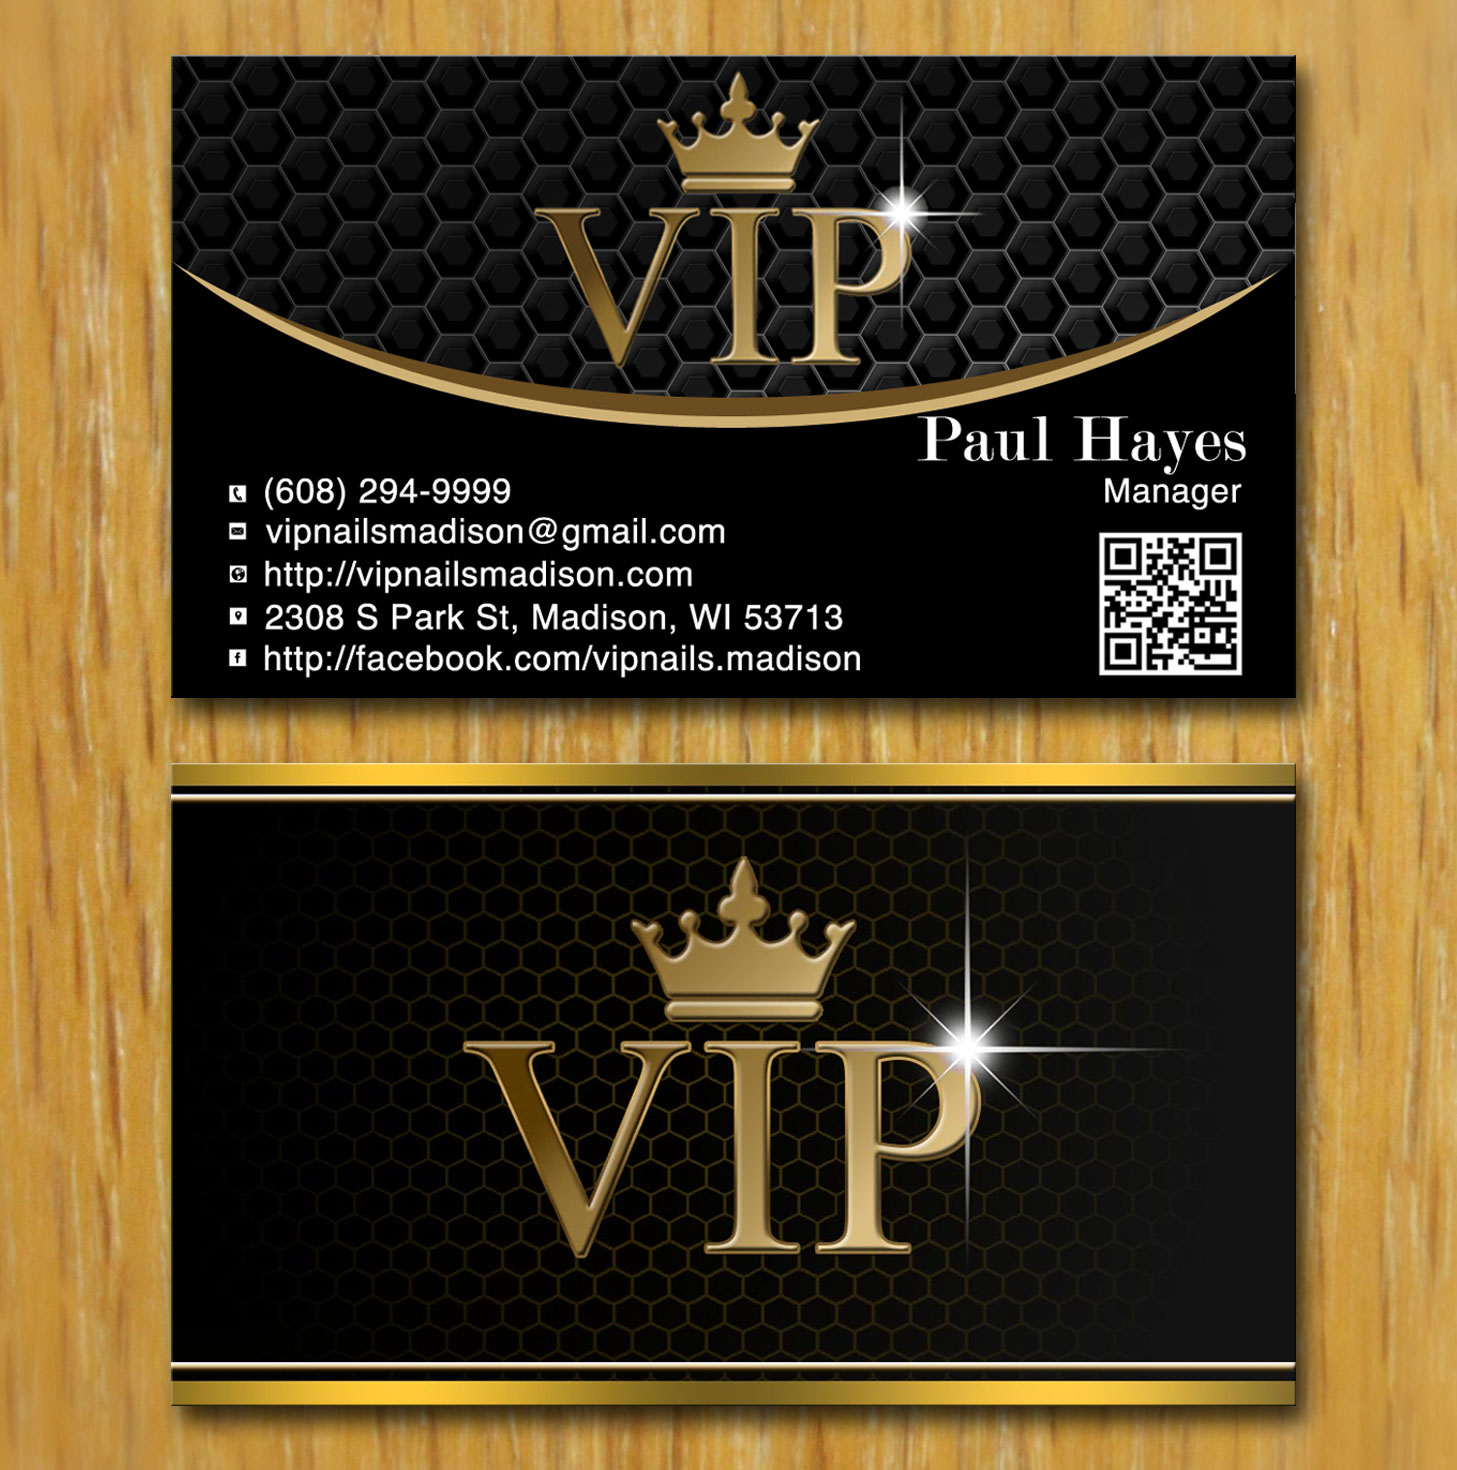 Elegant playful business business card design for vip nails spa business card design by creation lanka for vip nails spa design 8502963 reheart Choice Image